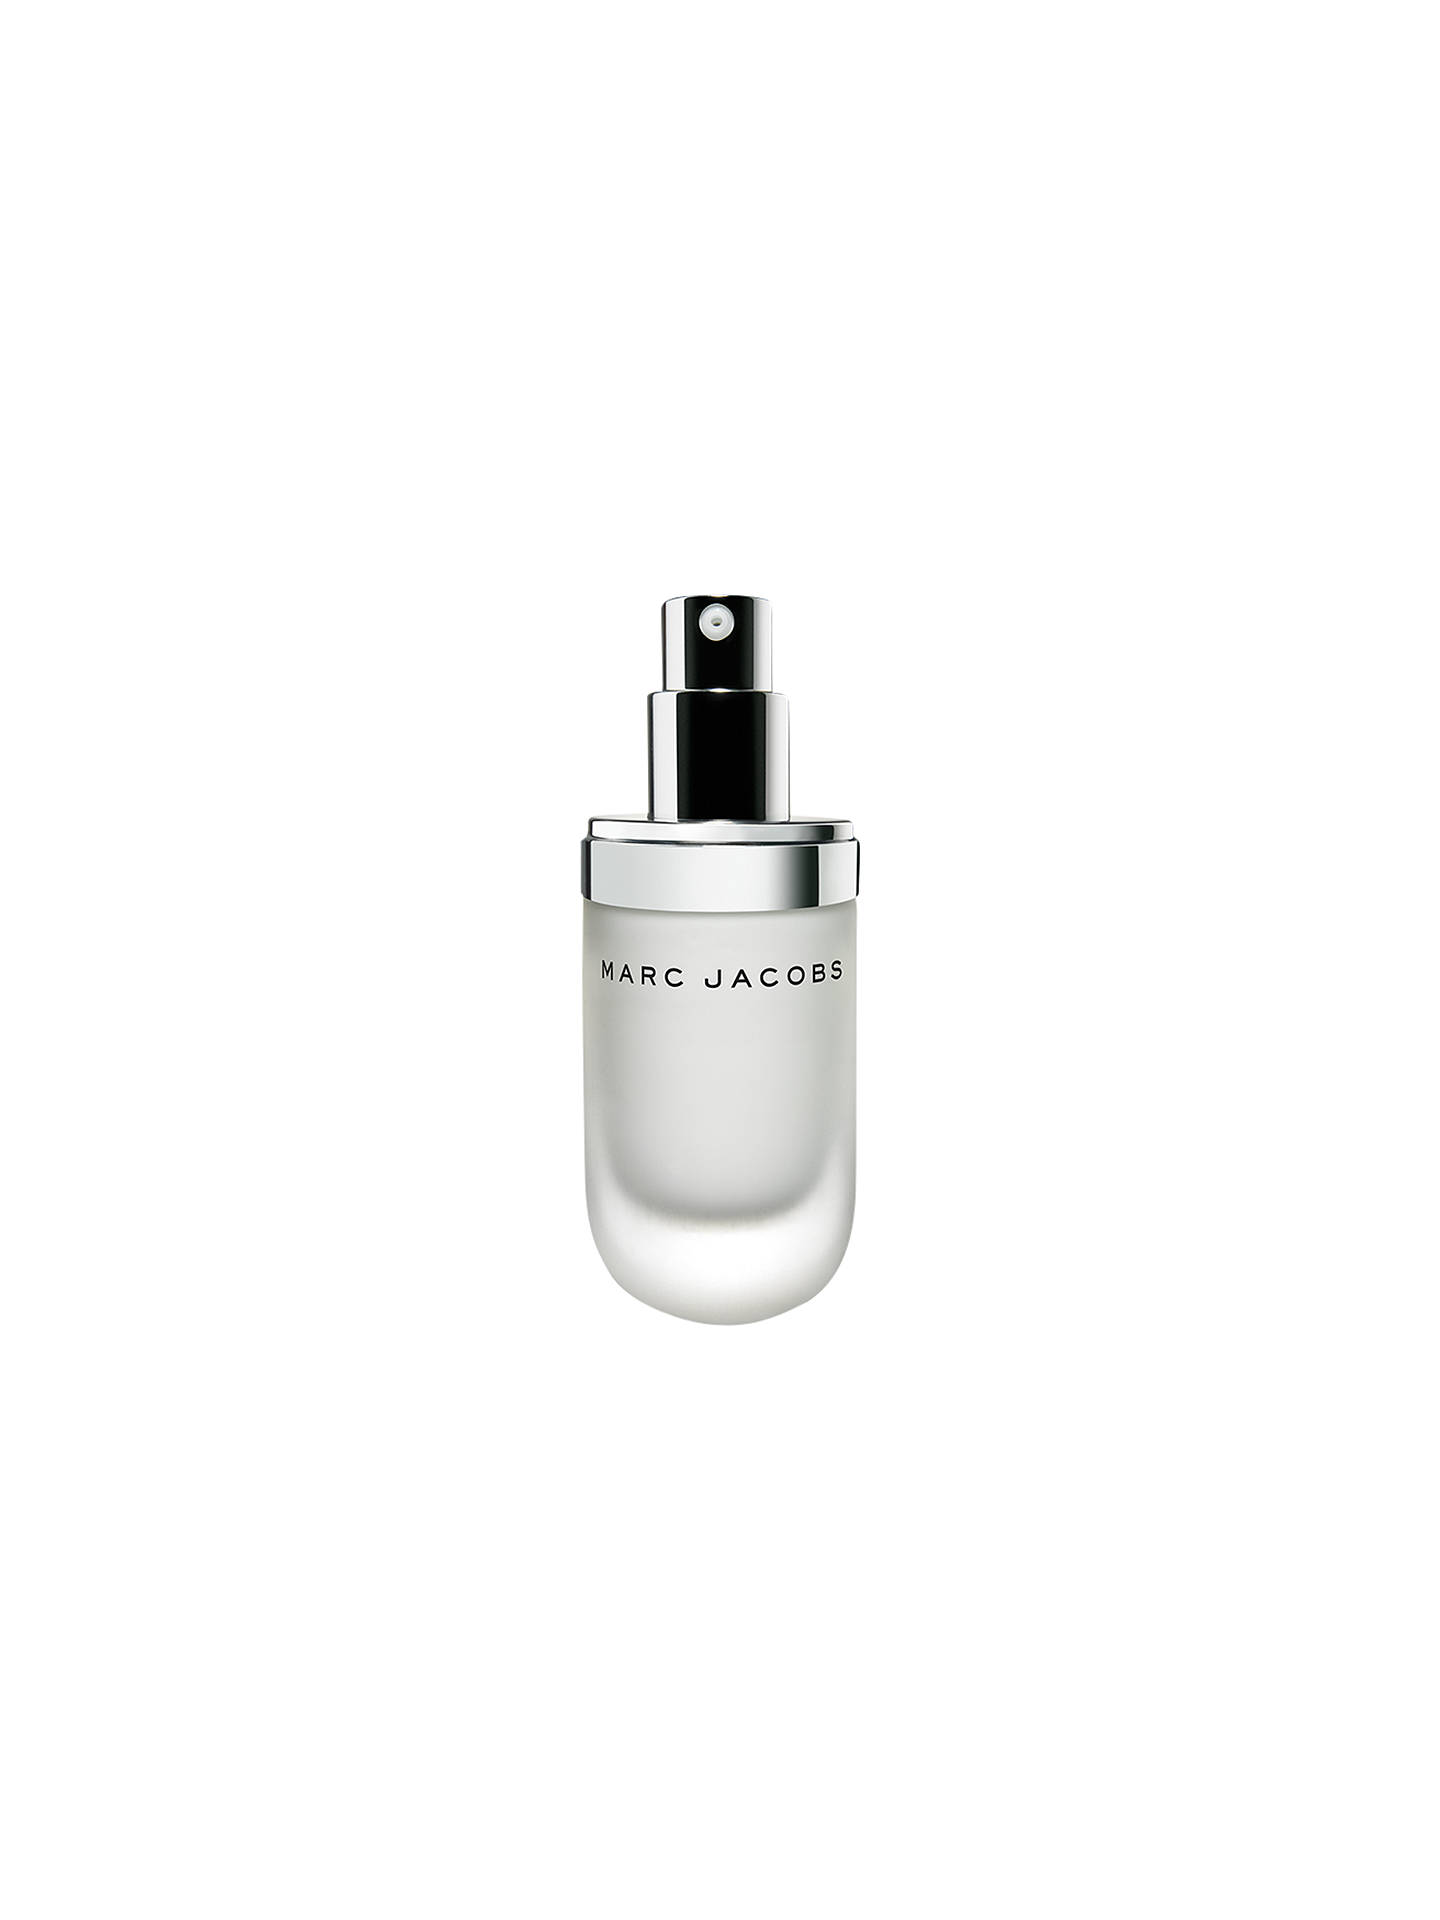 Buy Marc Jacobs Under(Cover) Perfecting Coconut Face Primer, Invisible Online at johnlewis.com